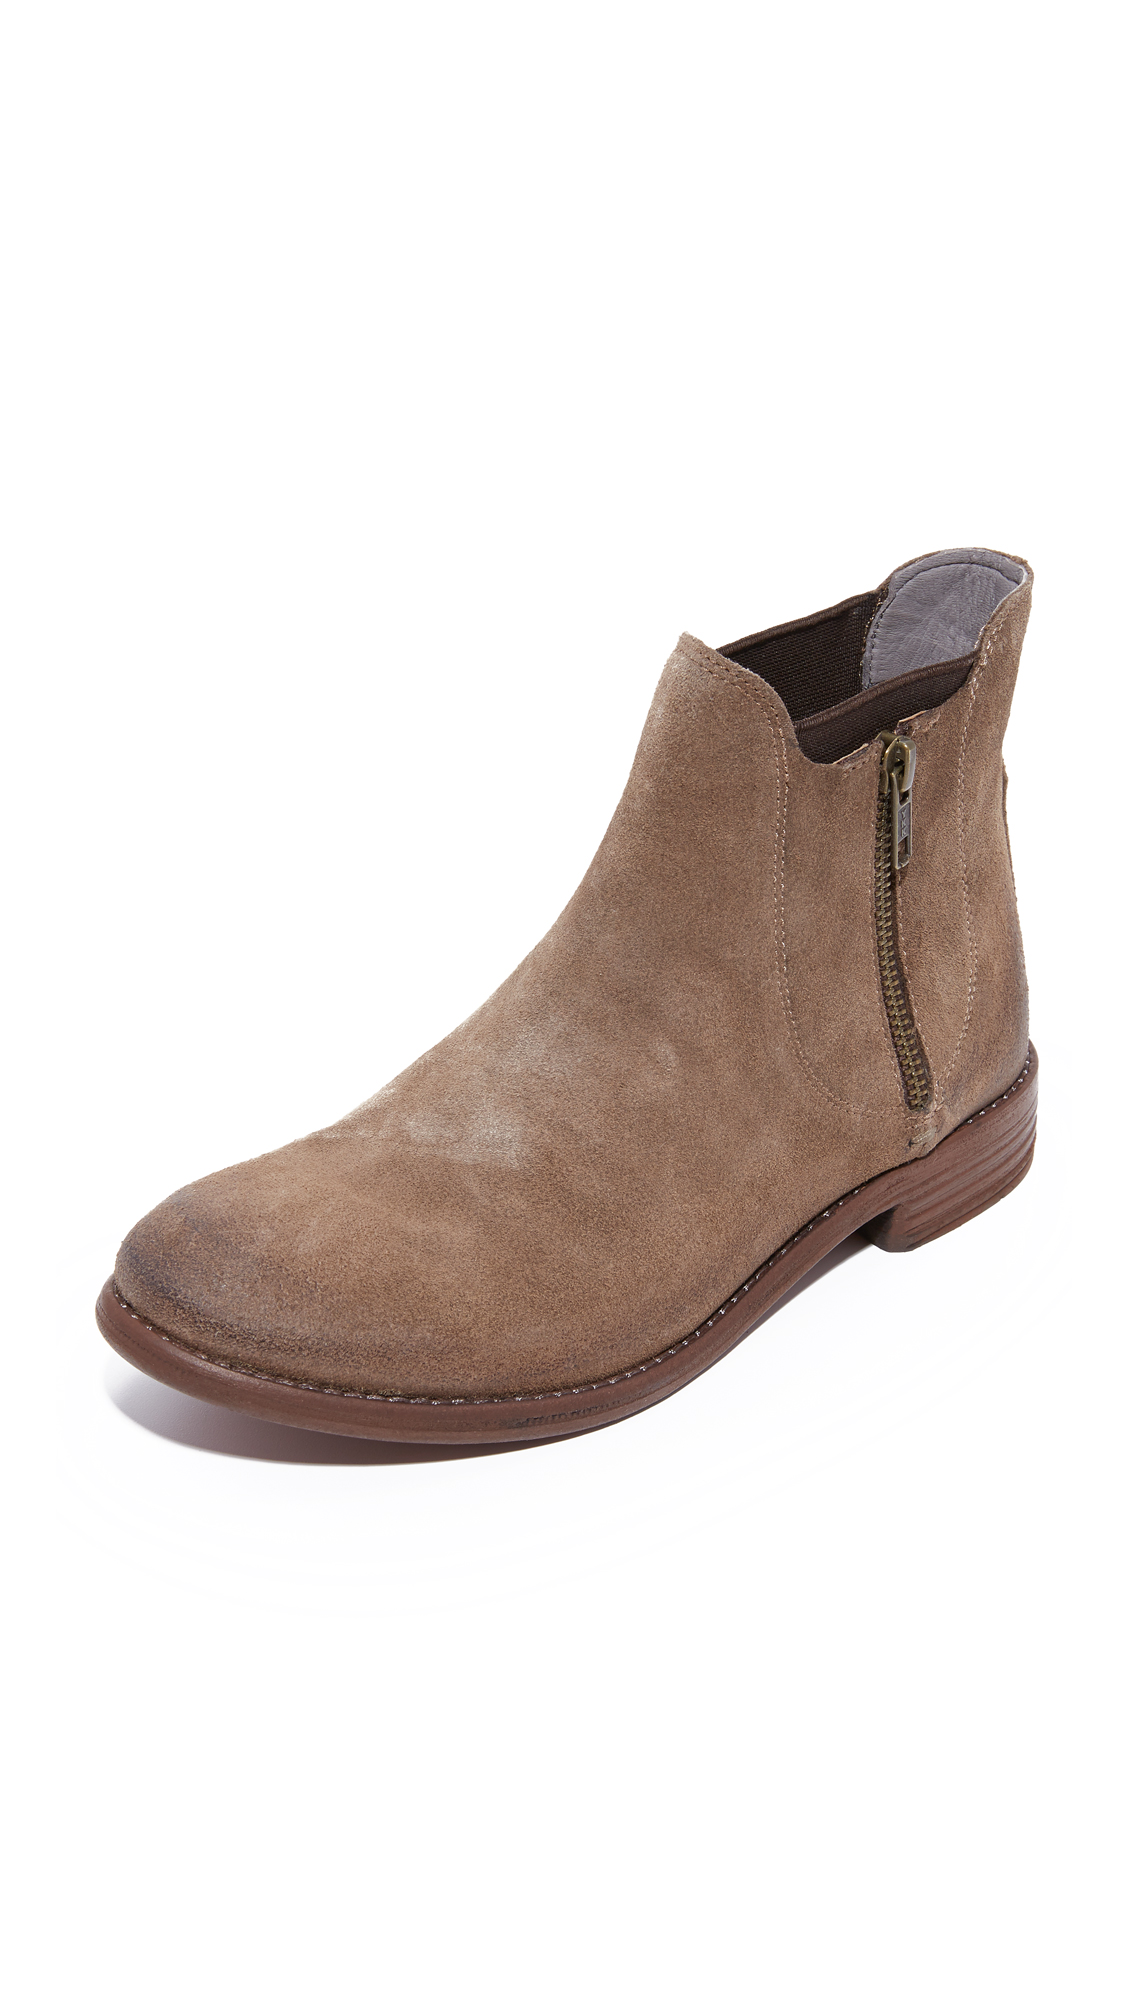 H By Hudson Algoma Booties - Taupe